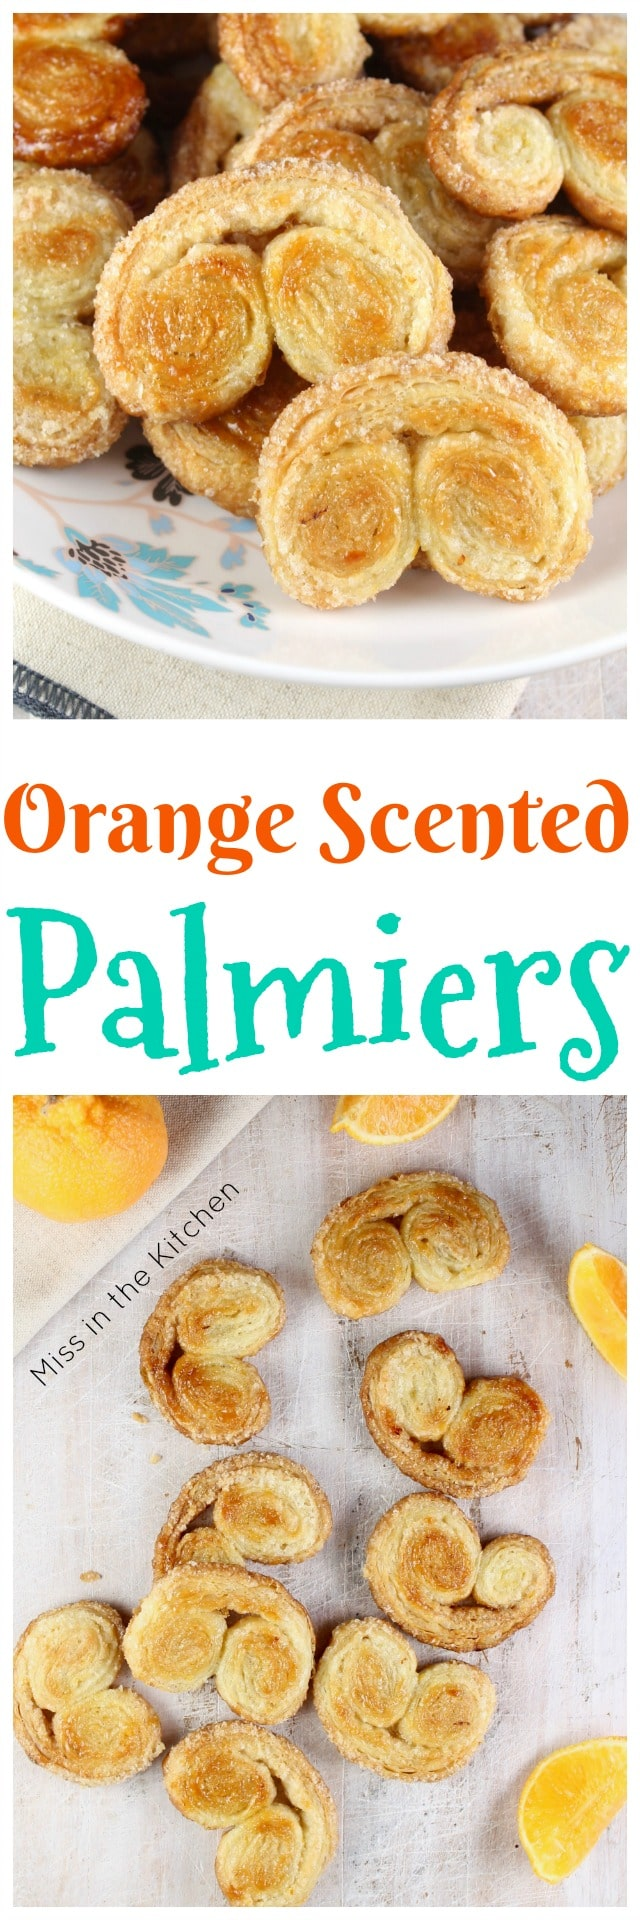 Orange Scented Palmiers Recipe from Effortless Entertaining by Meredith Steele of Steel House Kitchen ~ A delicious holiday cookie to bake and share! MissintheKitchen.com